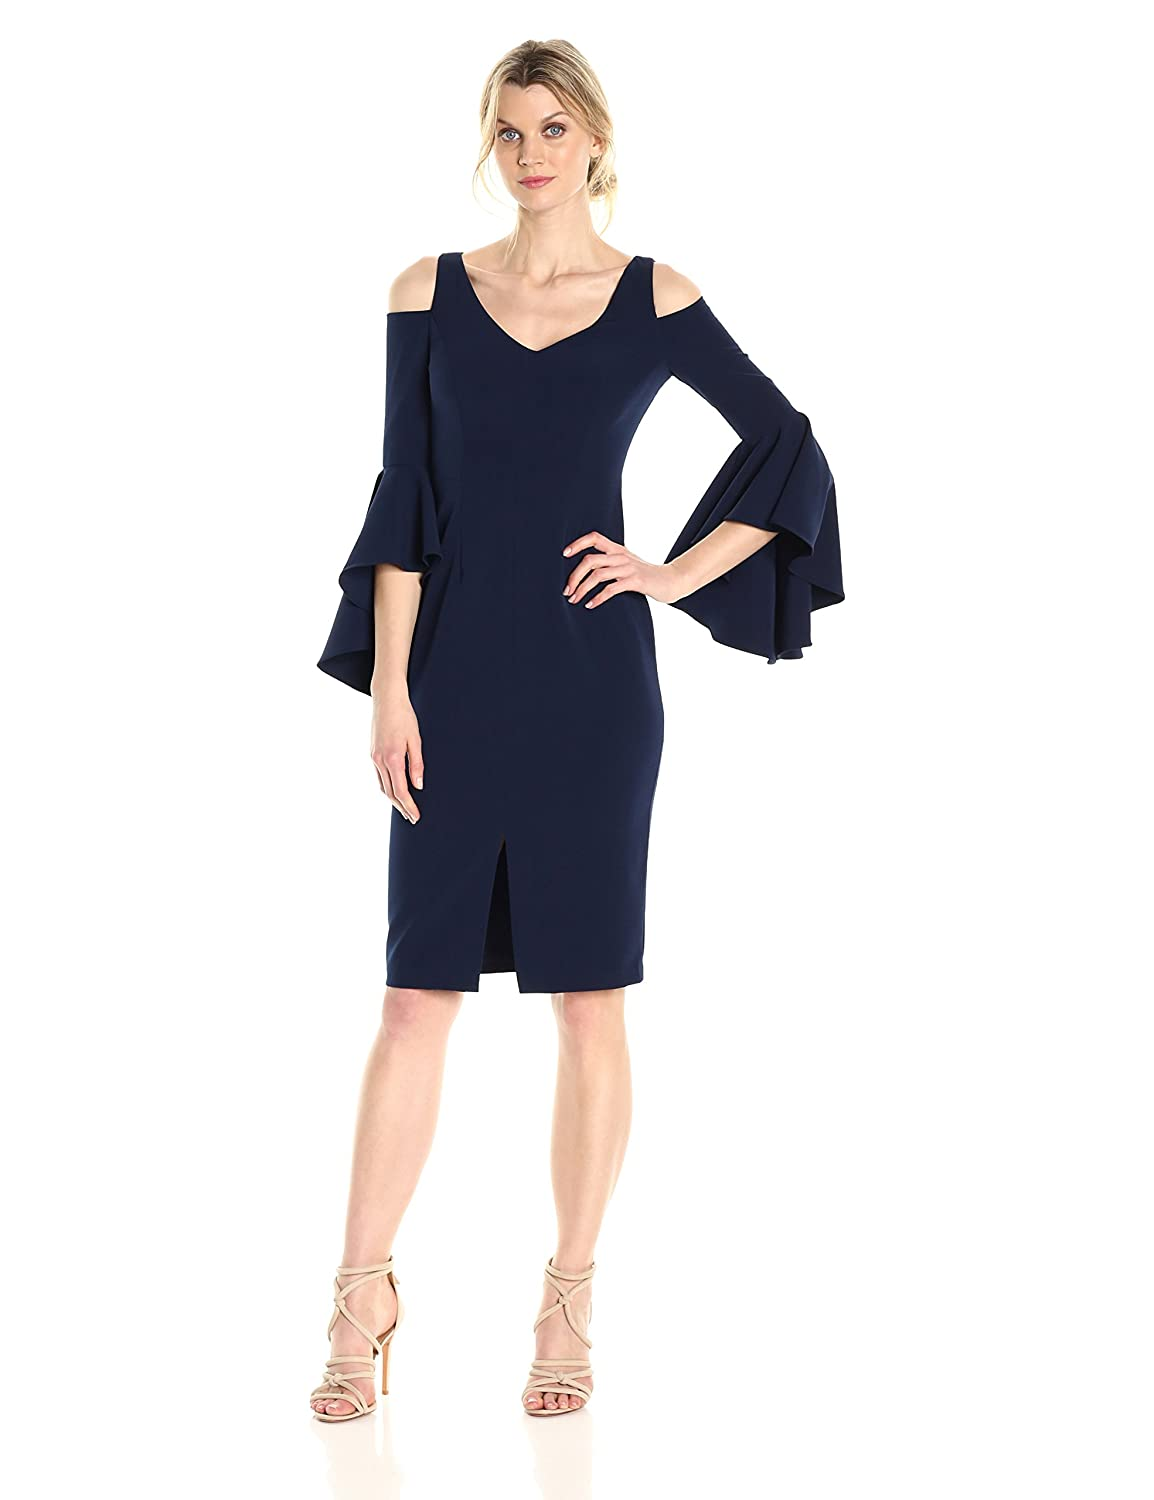 Patriot bluee Maggy London Women's Cold Shoulder Sheath with Ruffle Sleeve